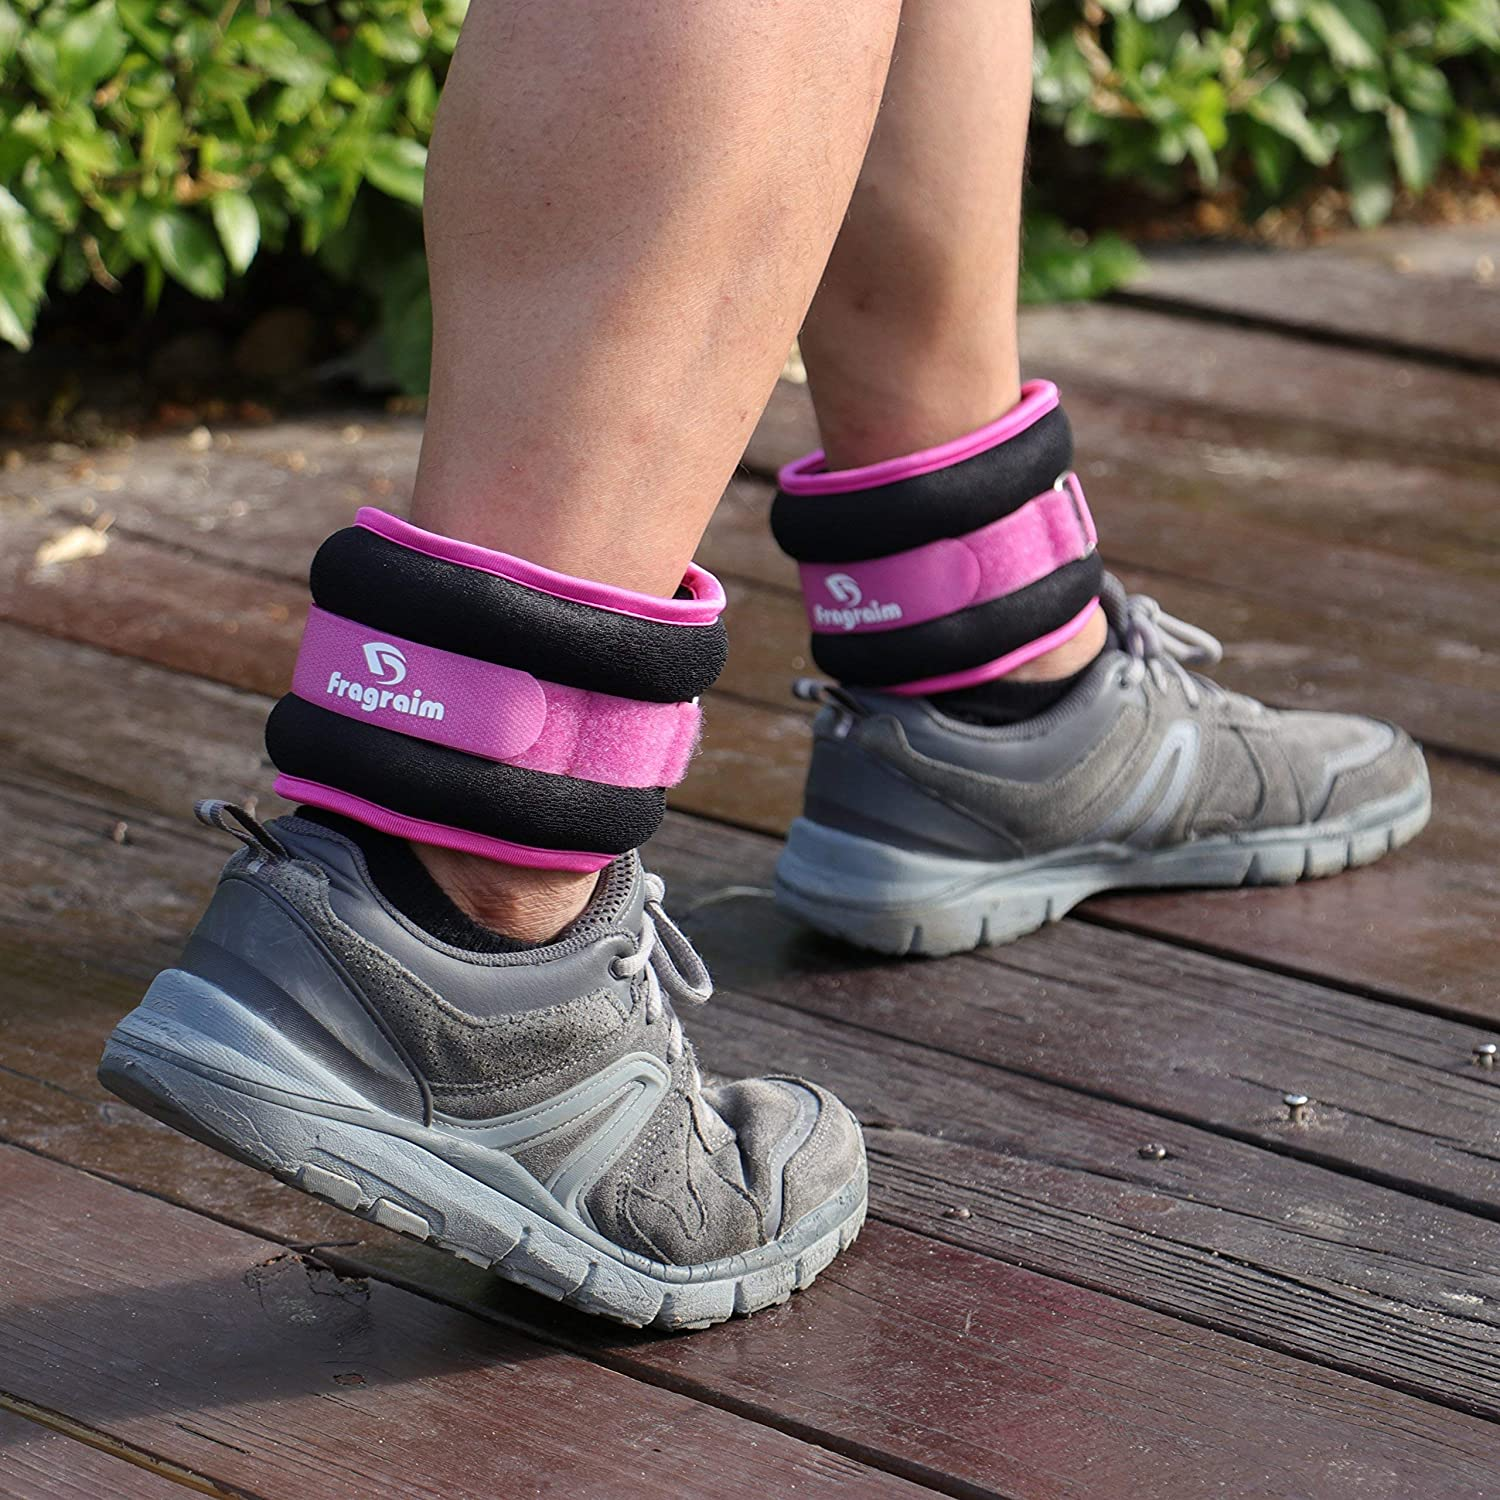 Details about  /Ankle //Wrist Weights Set for Women Men and Kids Durable Strength Training strap